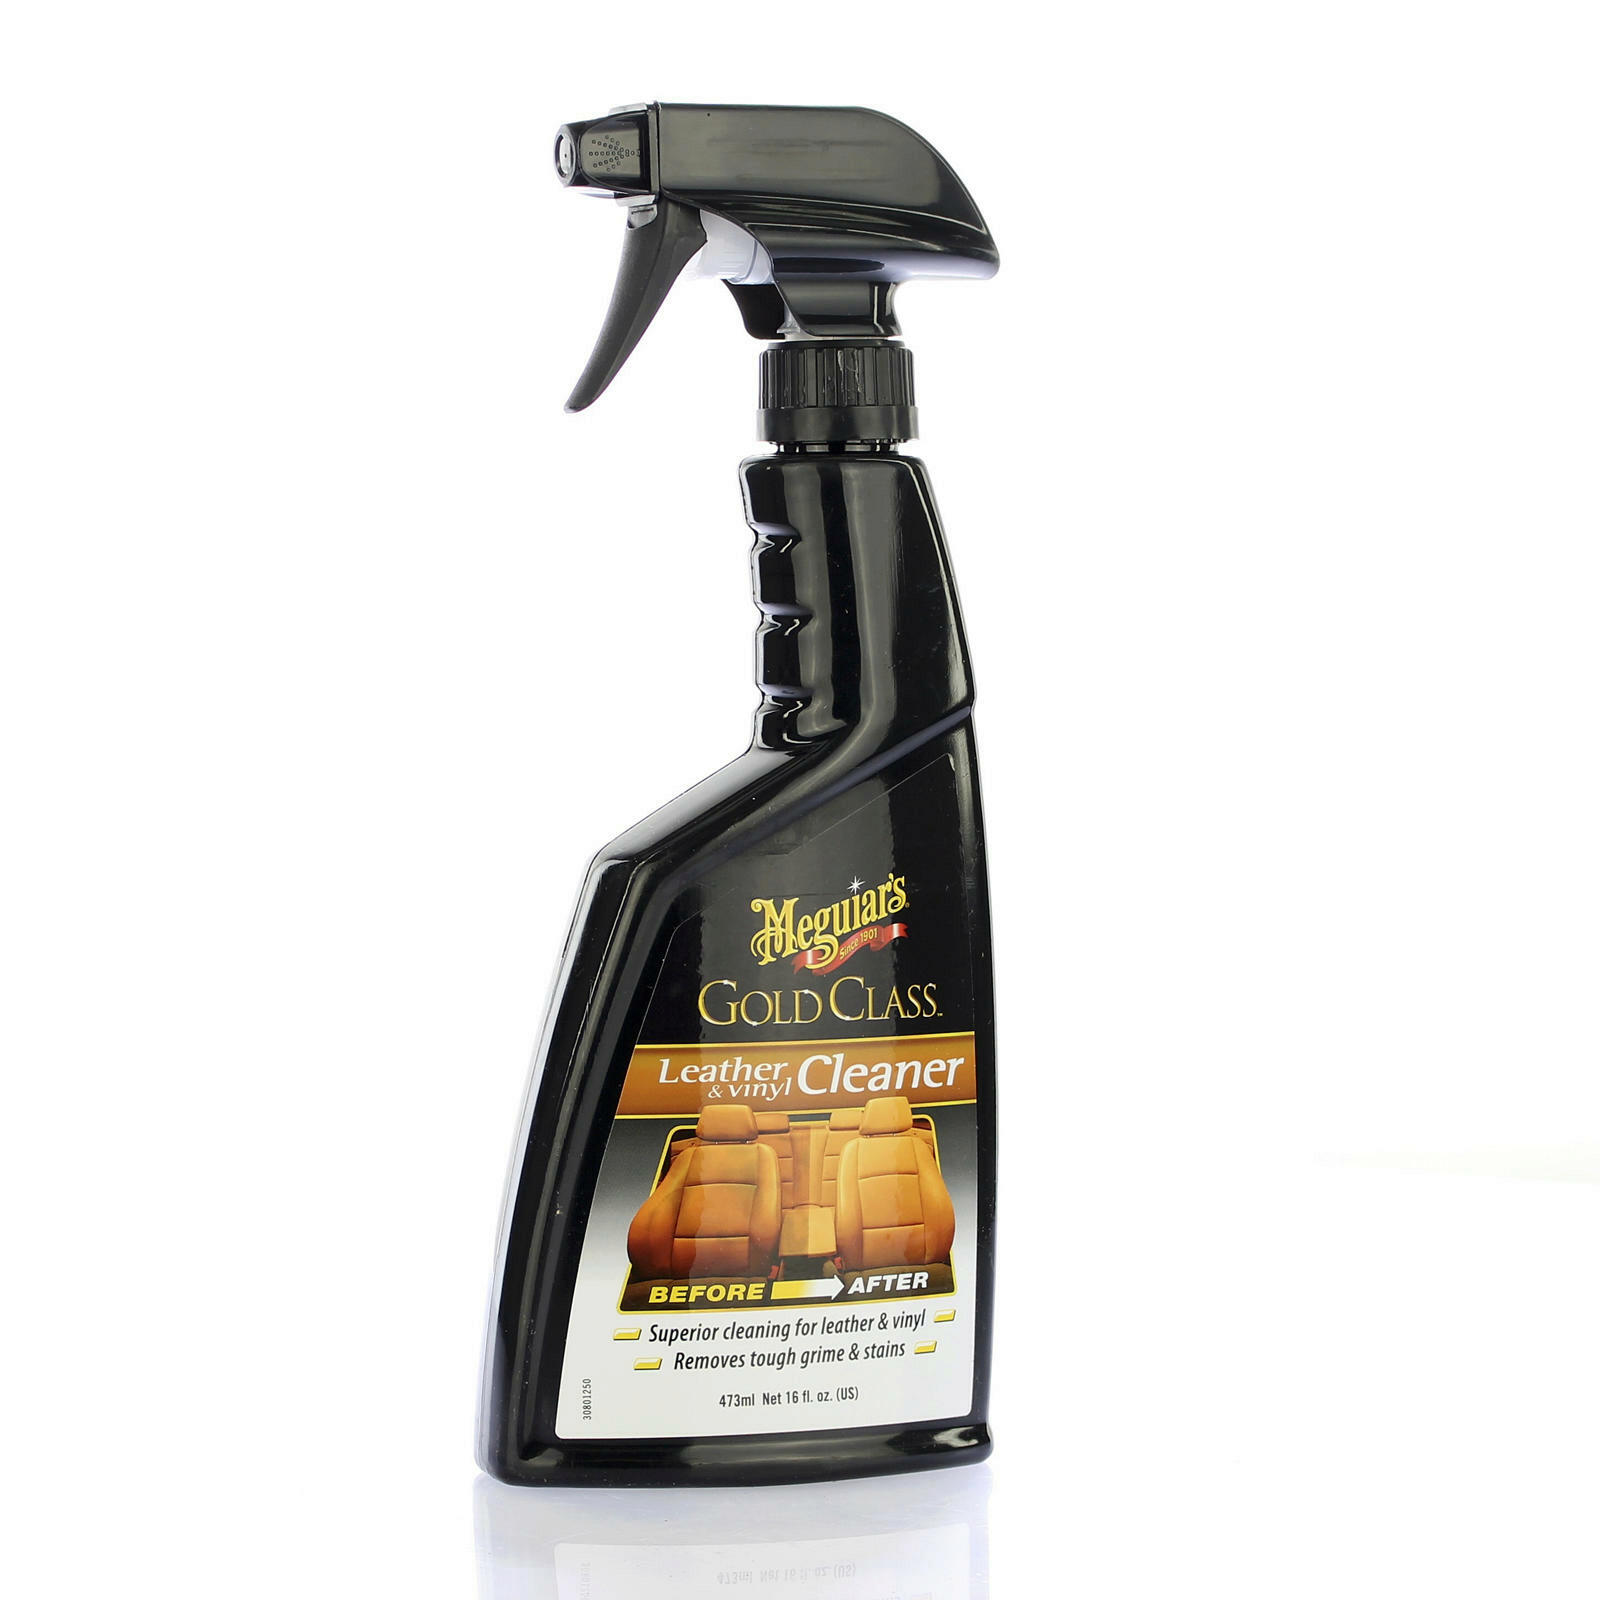 Meguiars Gold Class Leather & Venyl Cleaner 473ml Lederreiniger